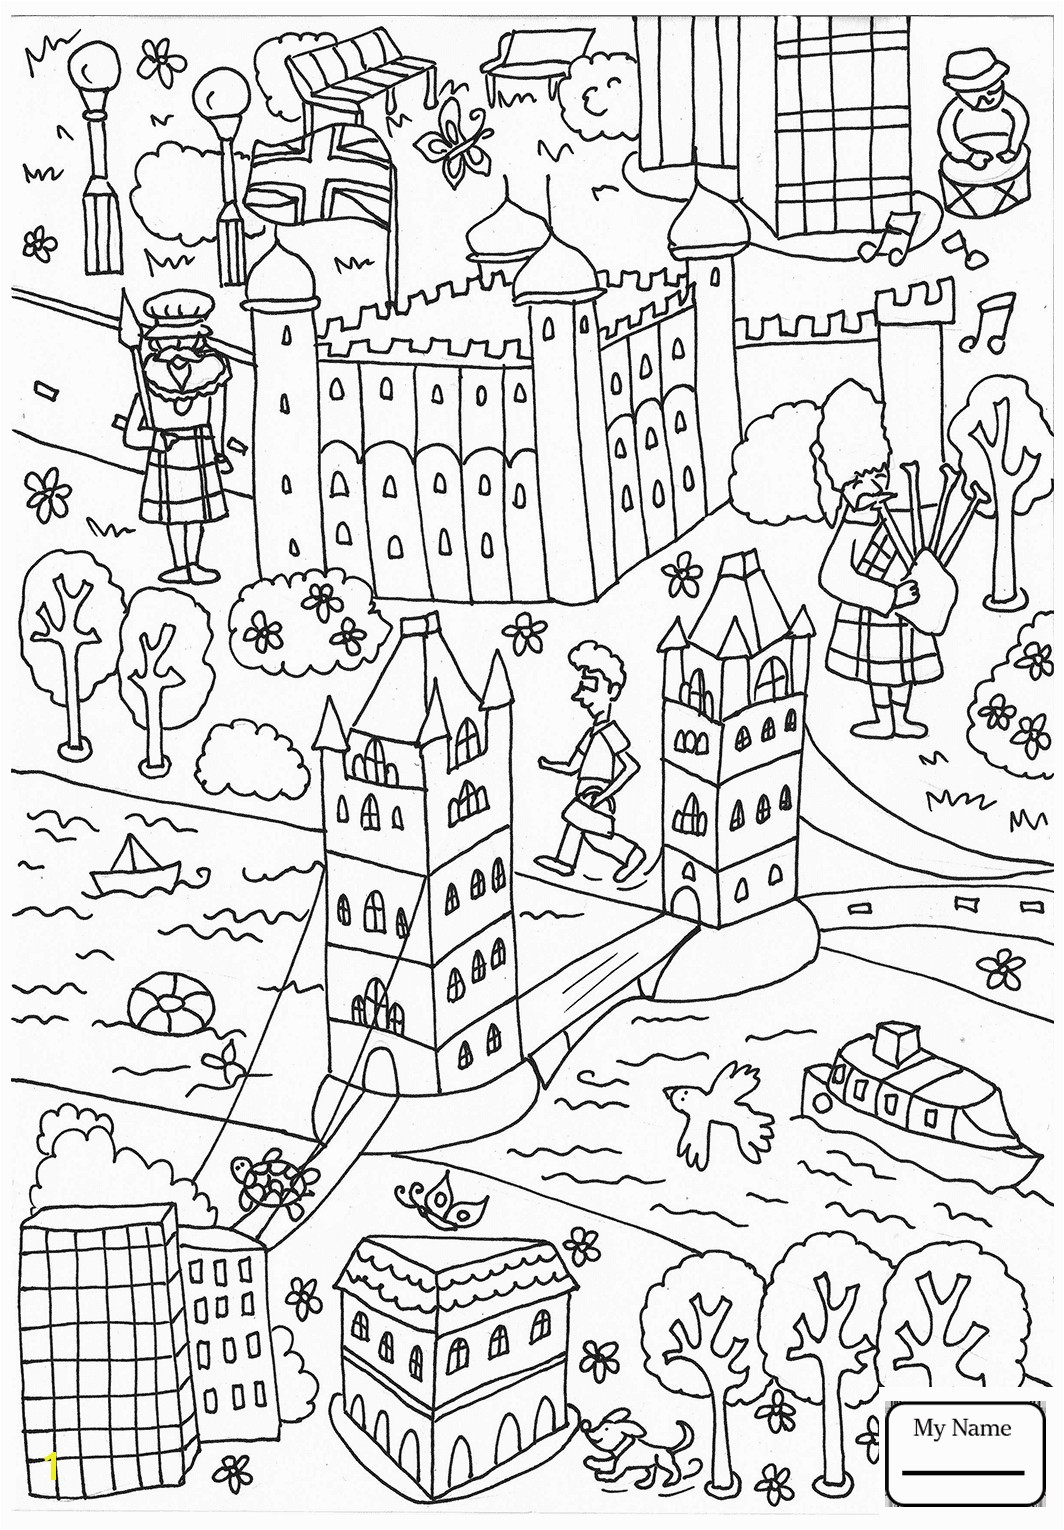 Informative Central Park Coloring Pages Arts Culture Architecture And Metropolitan Museum